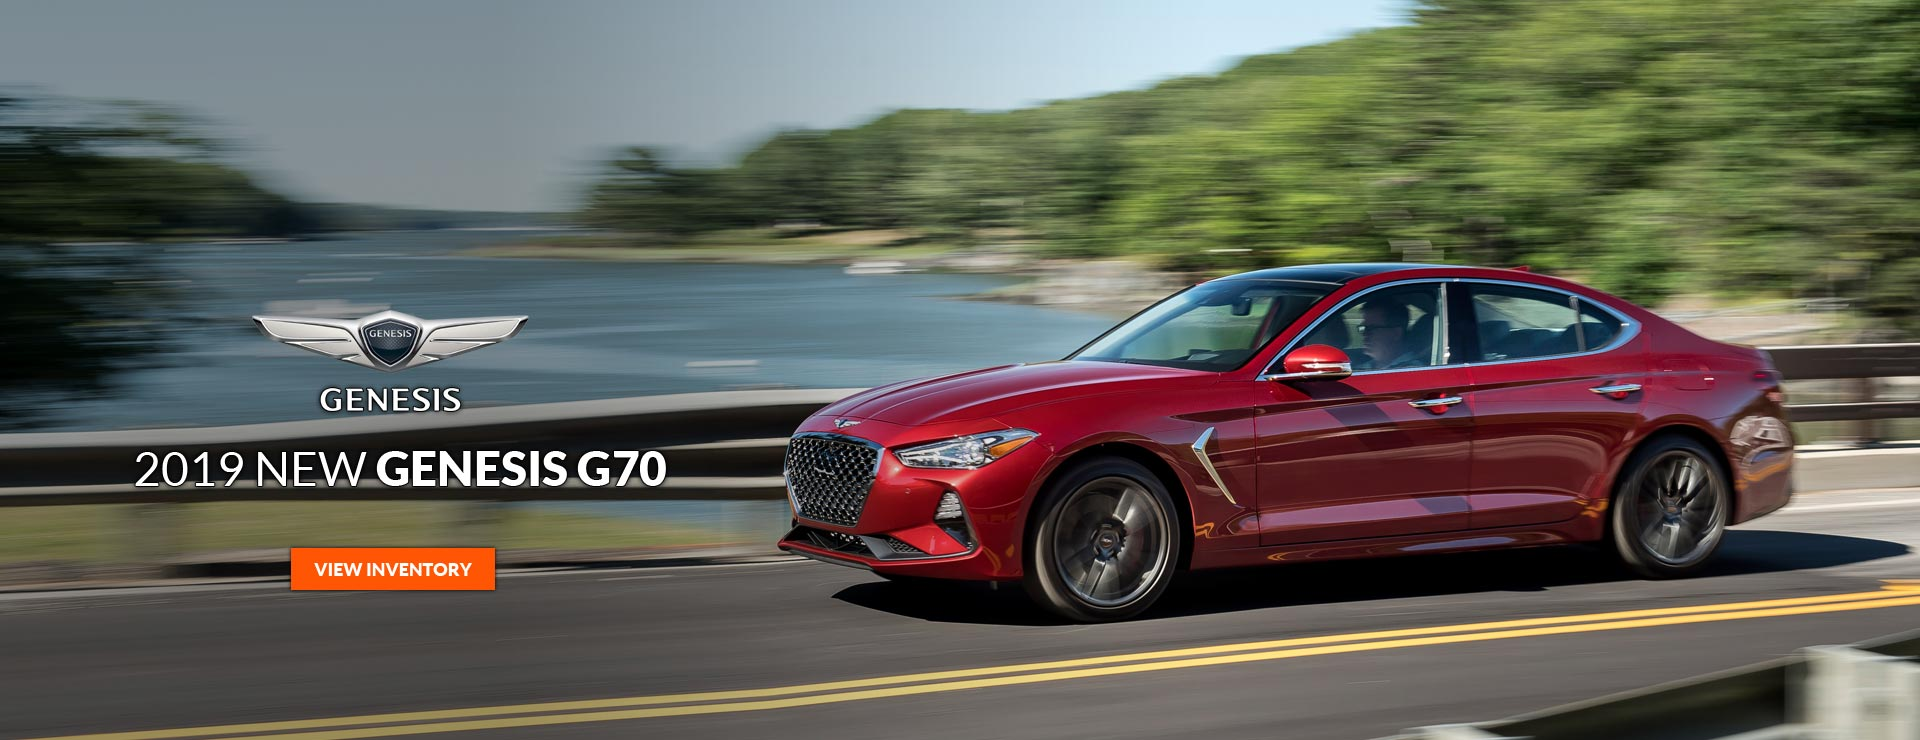 C&S Car Company - New Genesis G70 2019 Genesis G70